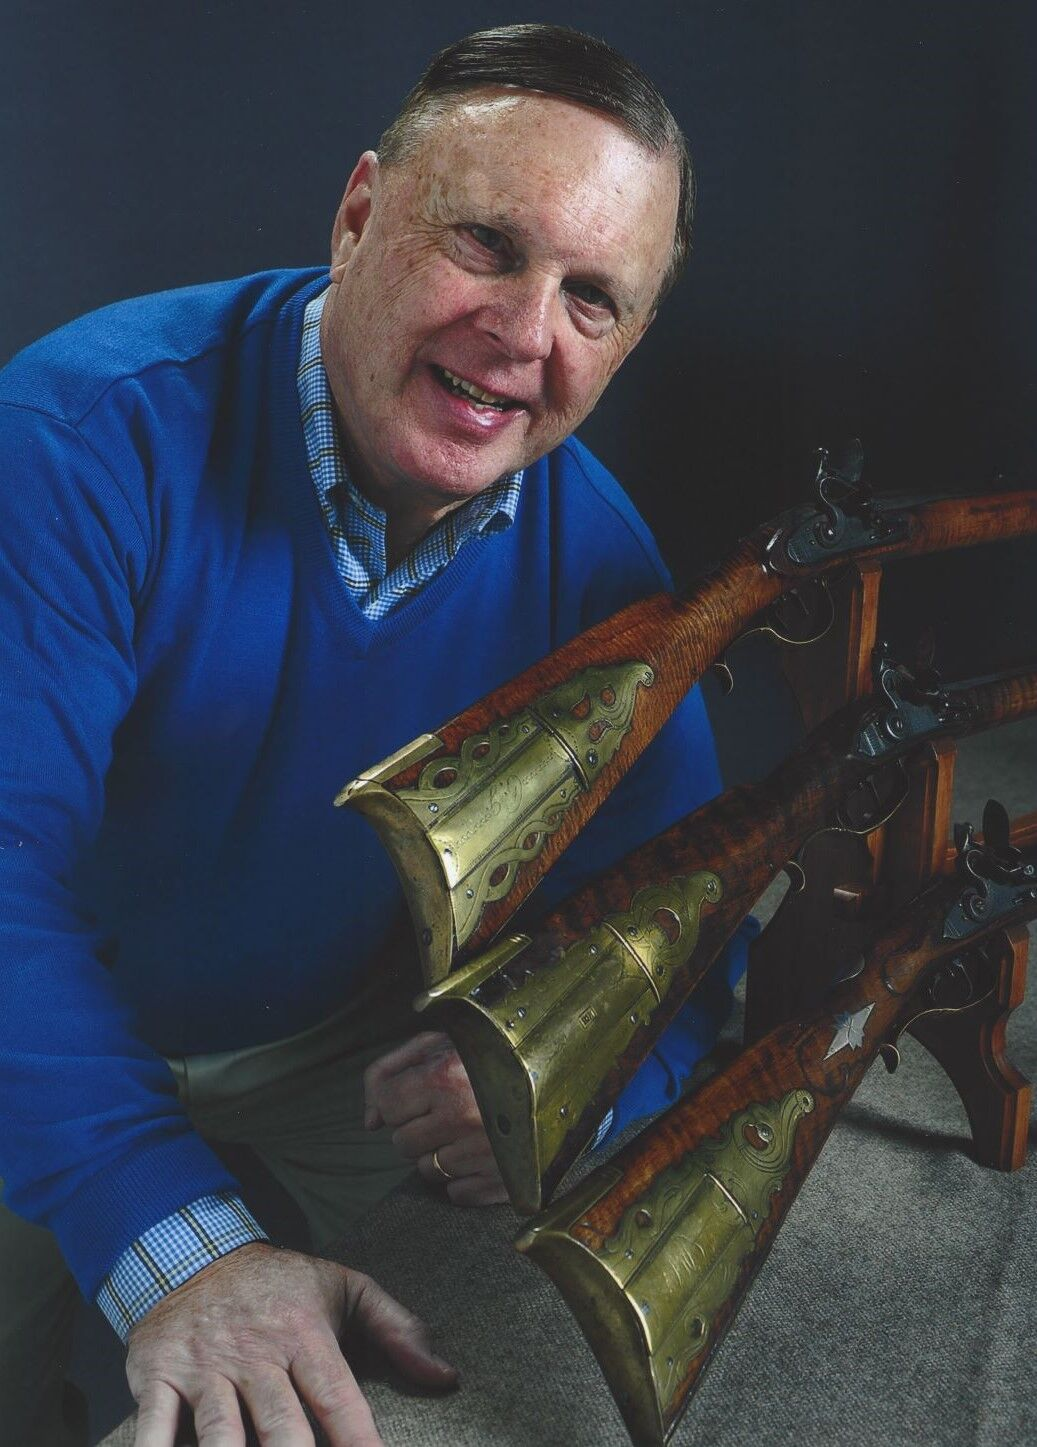 C. Michael Briggs Longrifle Collector and Author 3.jpg